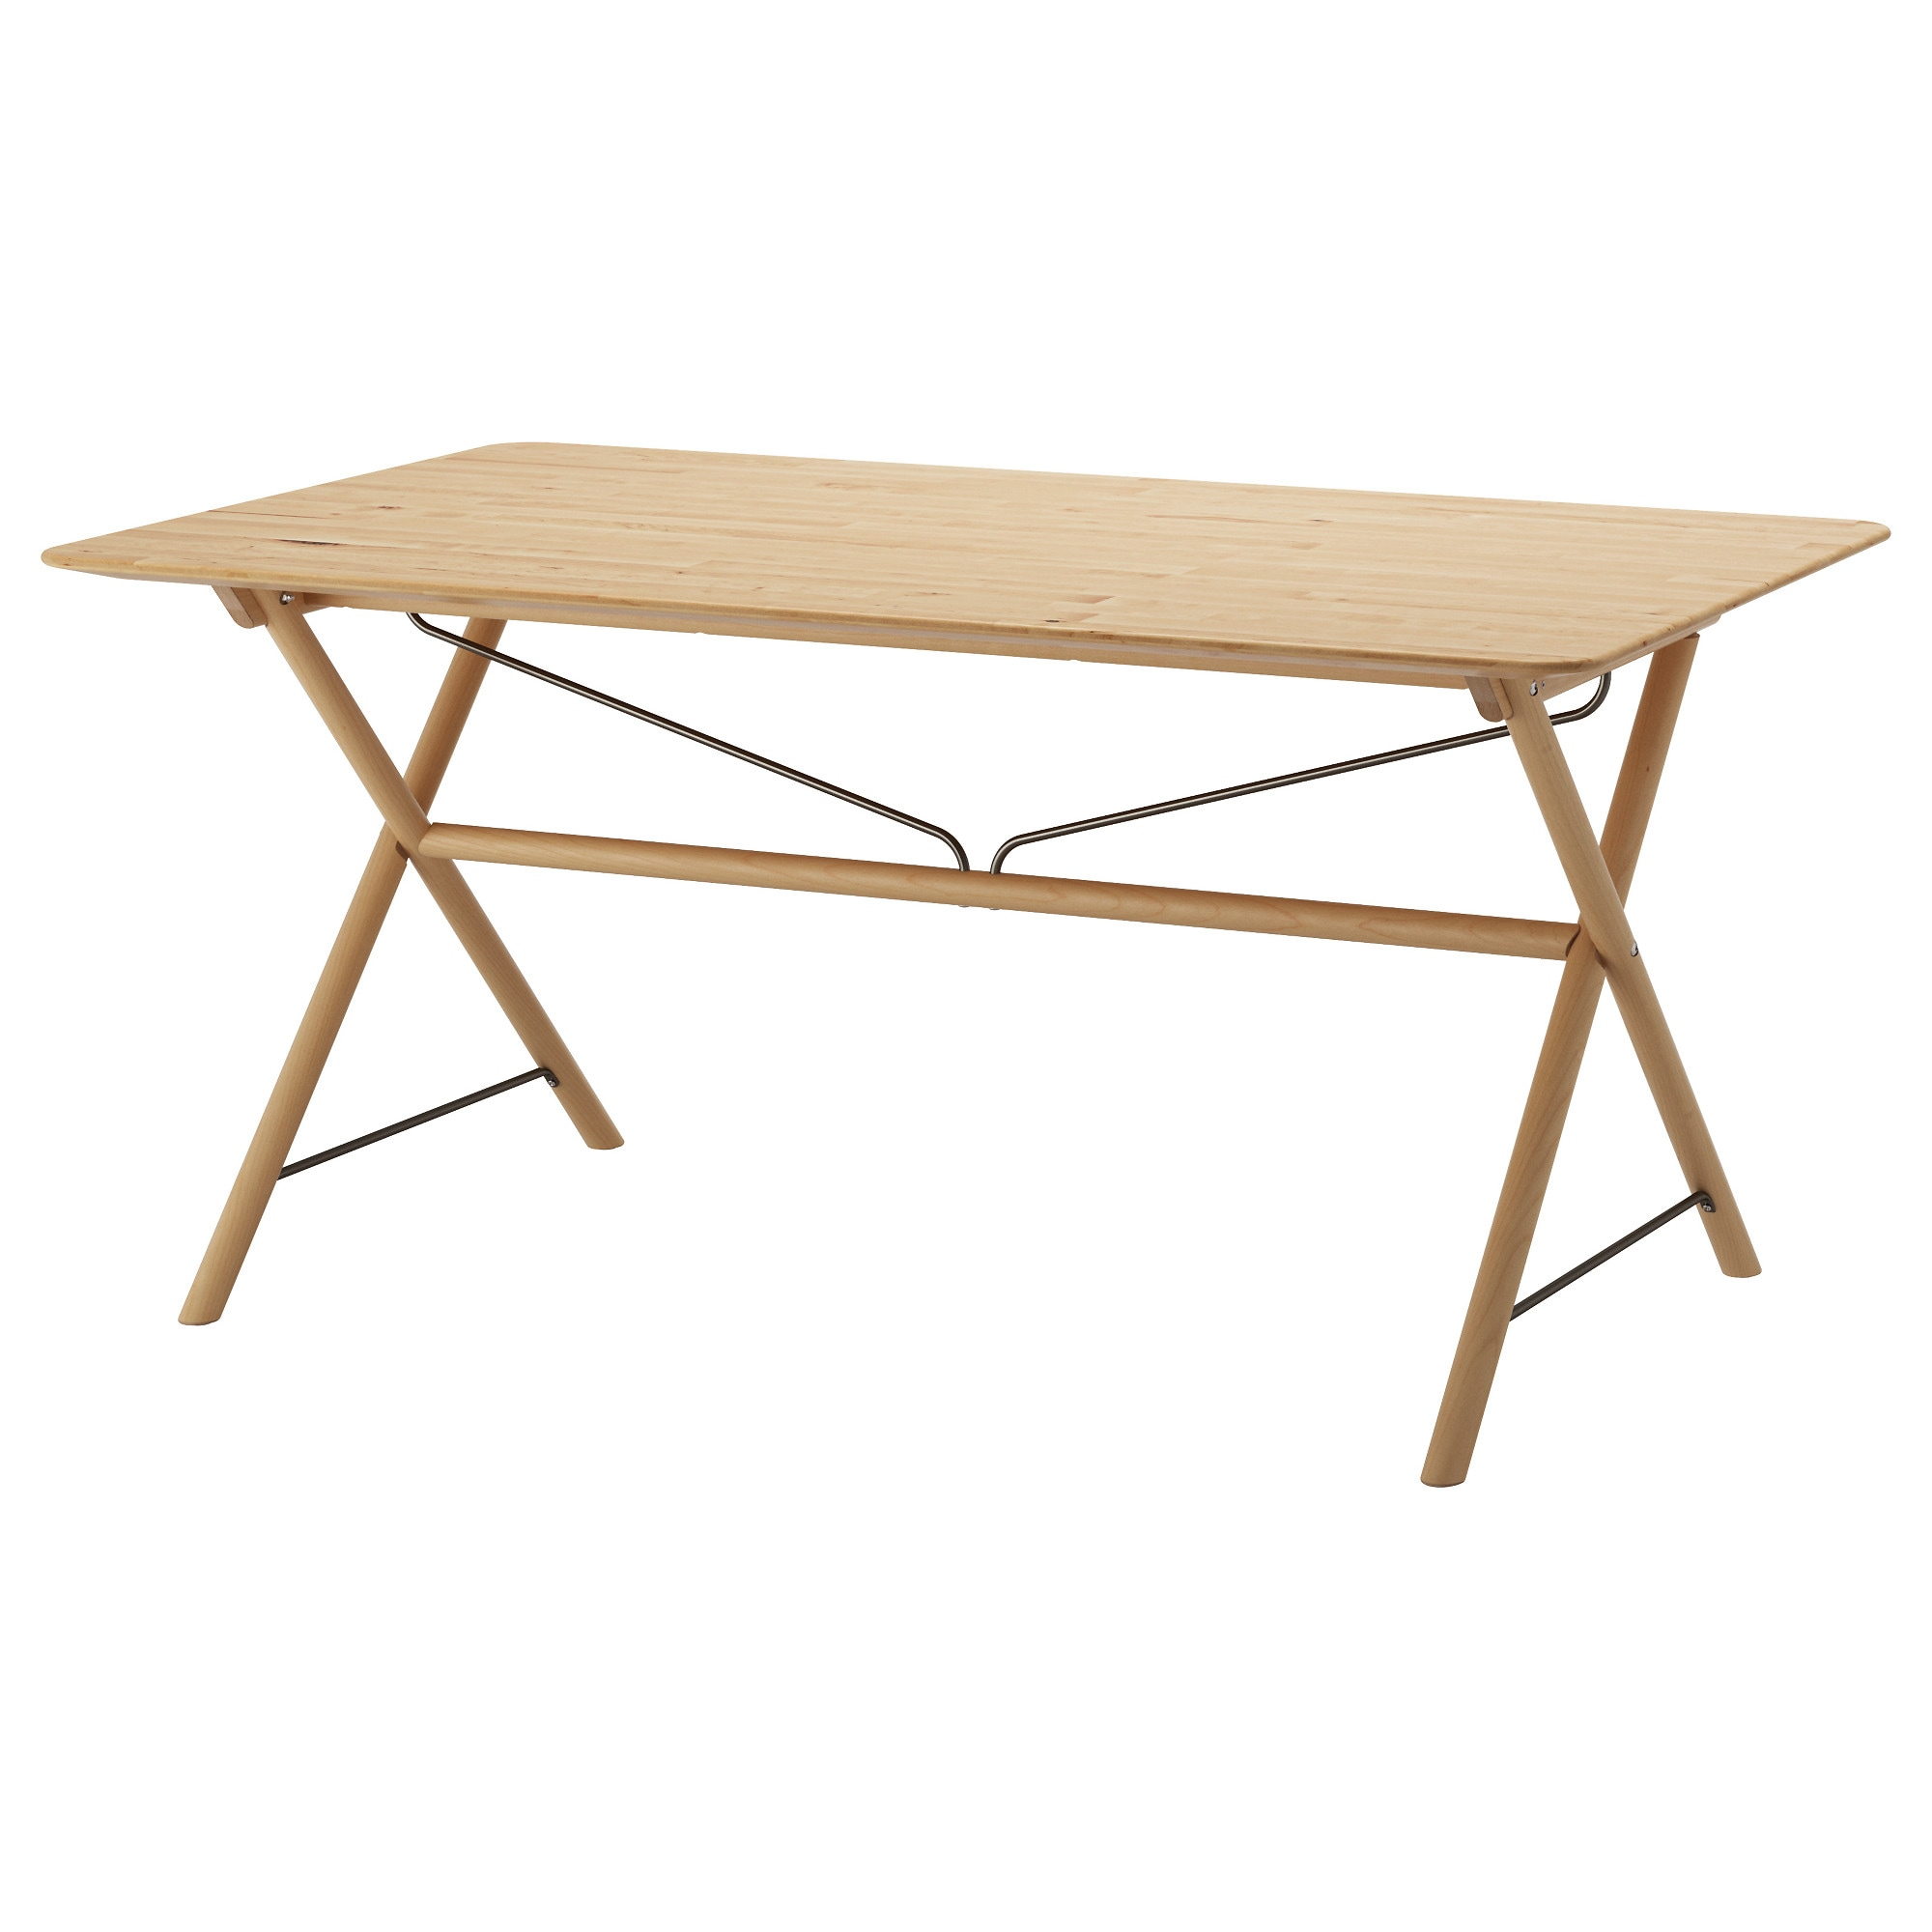 Table carree 8 personnes ikea 28 images pin table - Table basse modulable ikea ...